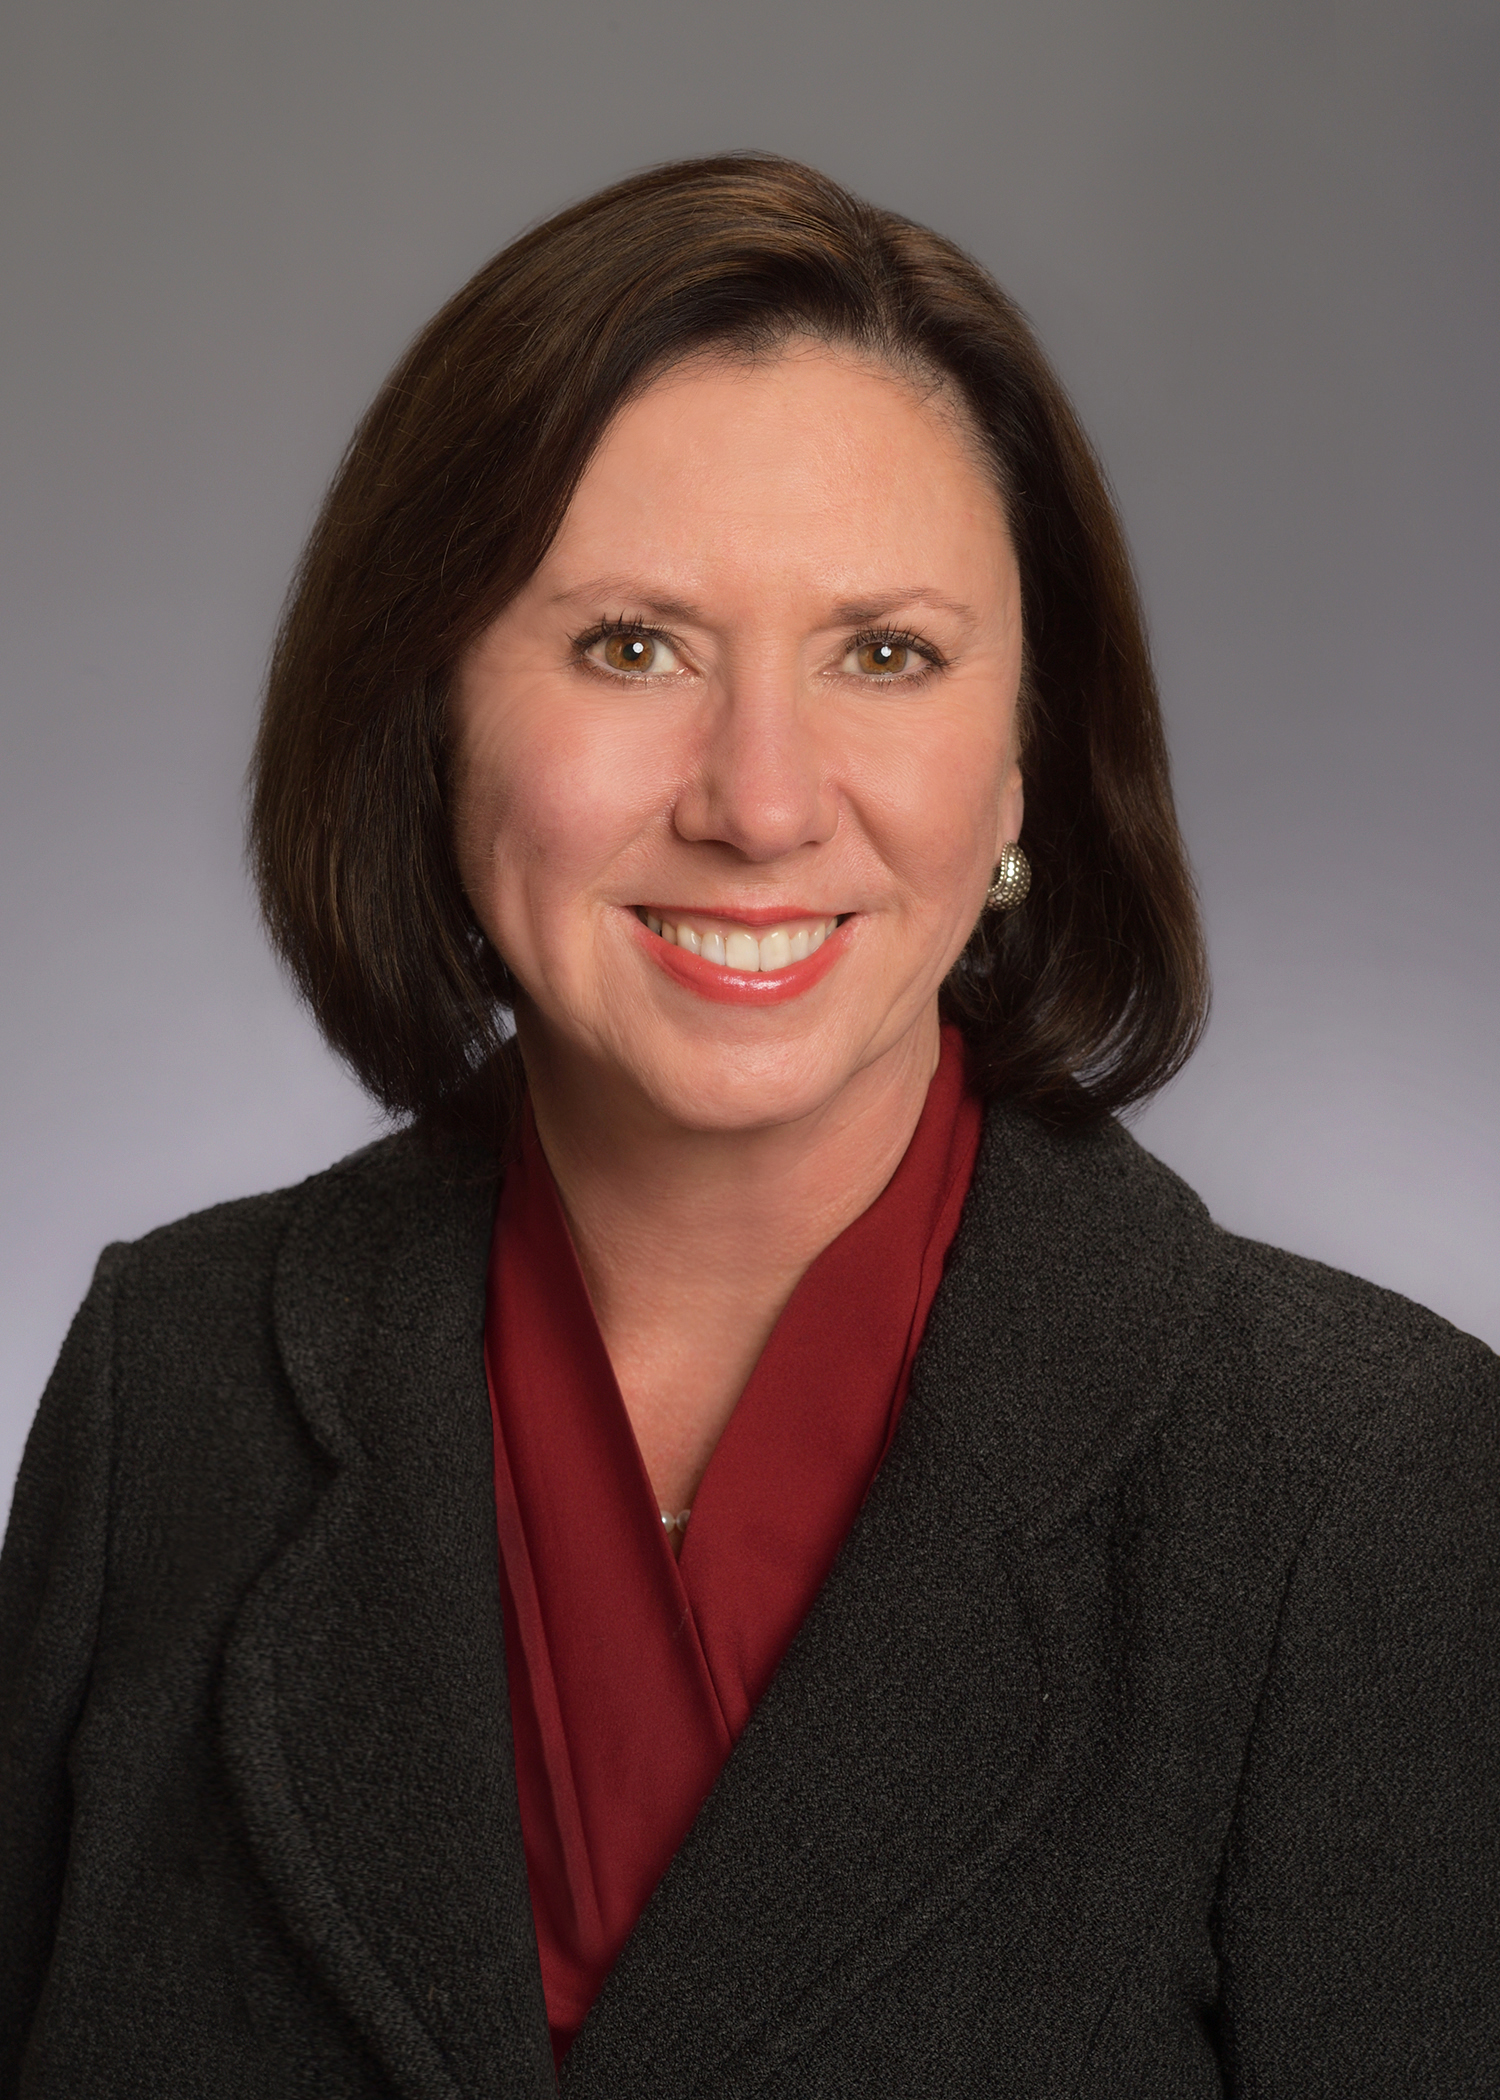 Sheila Sanders, Chief Information Officer, Emory Healthcare